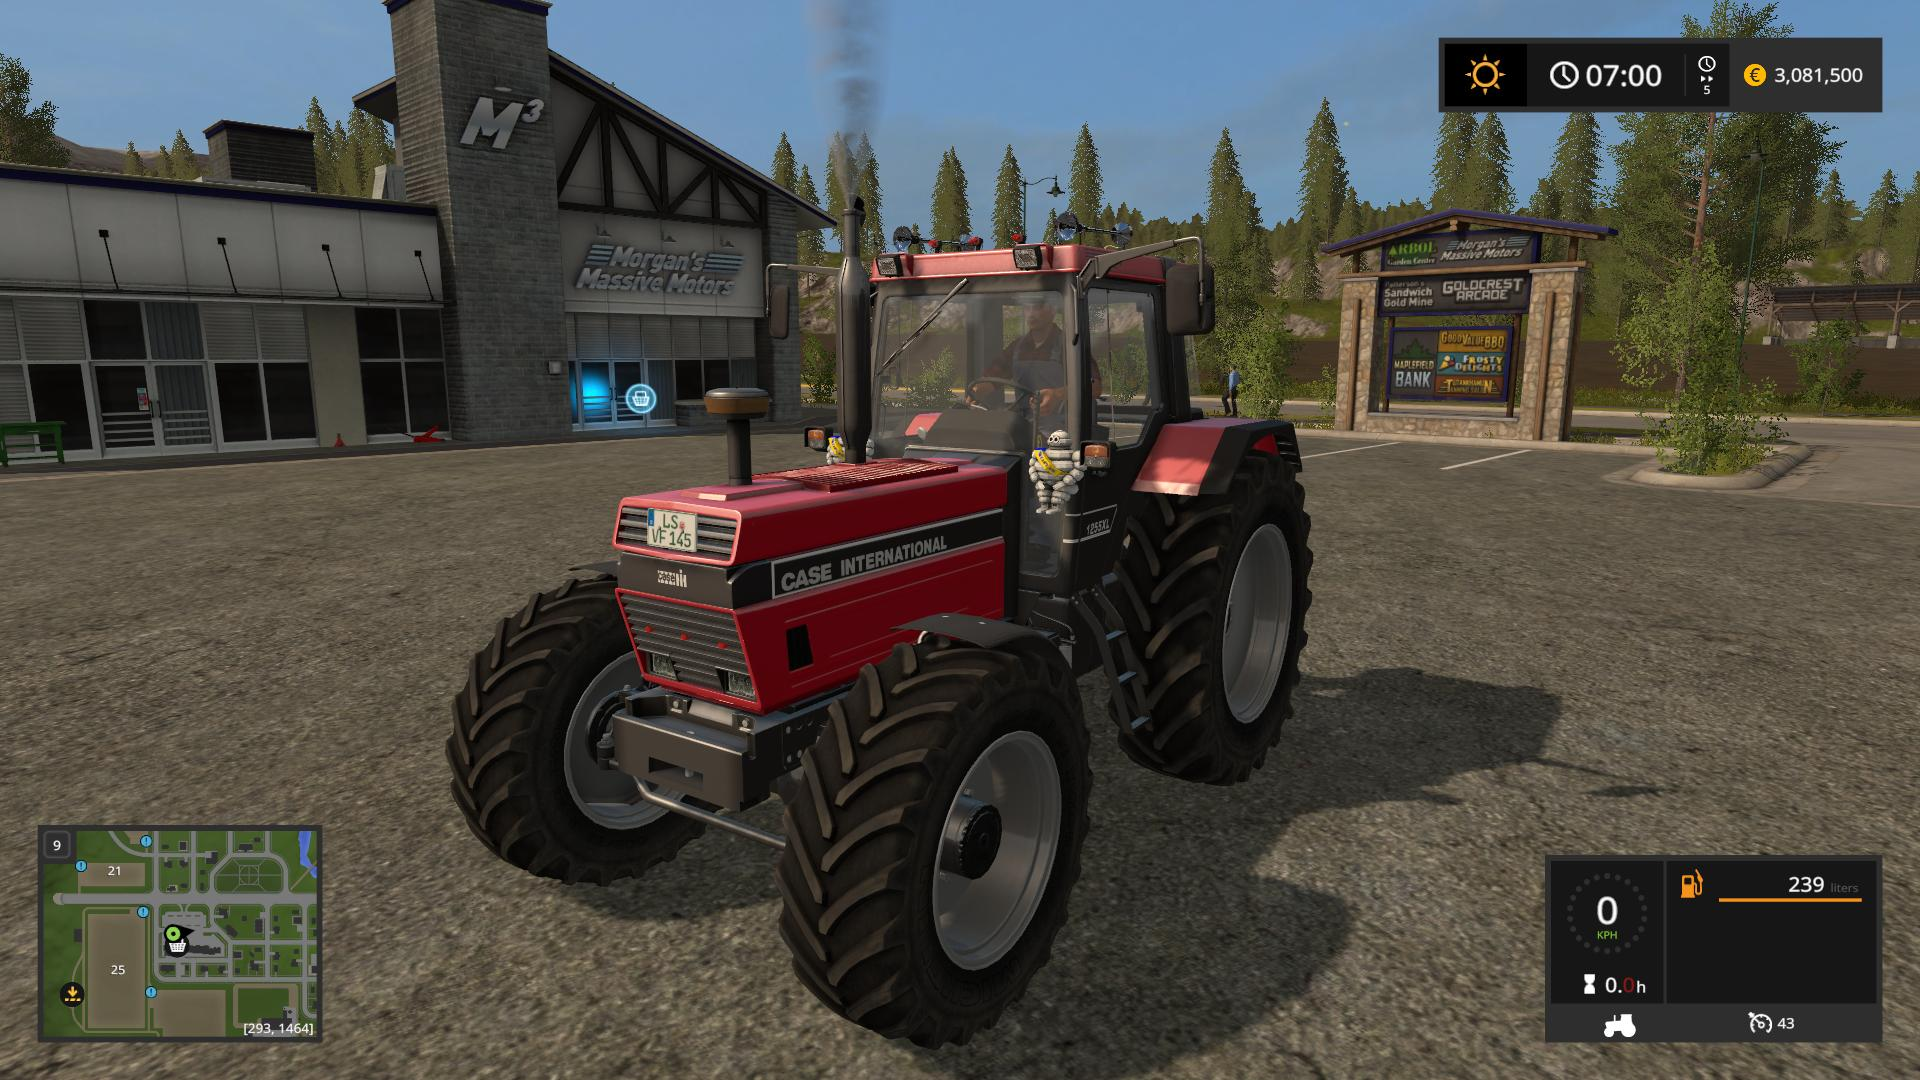 Case 1455xl pimp V1.2 by lucw33